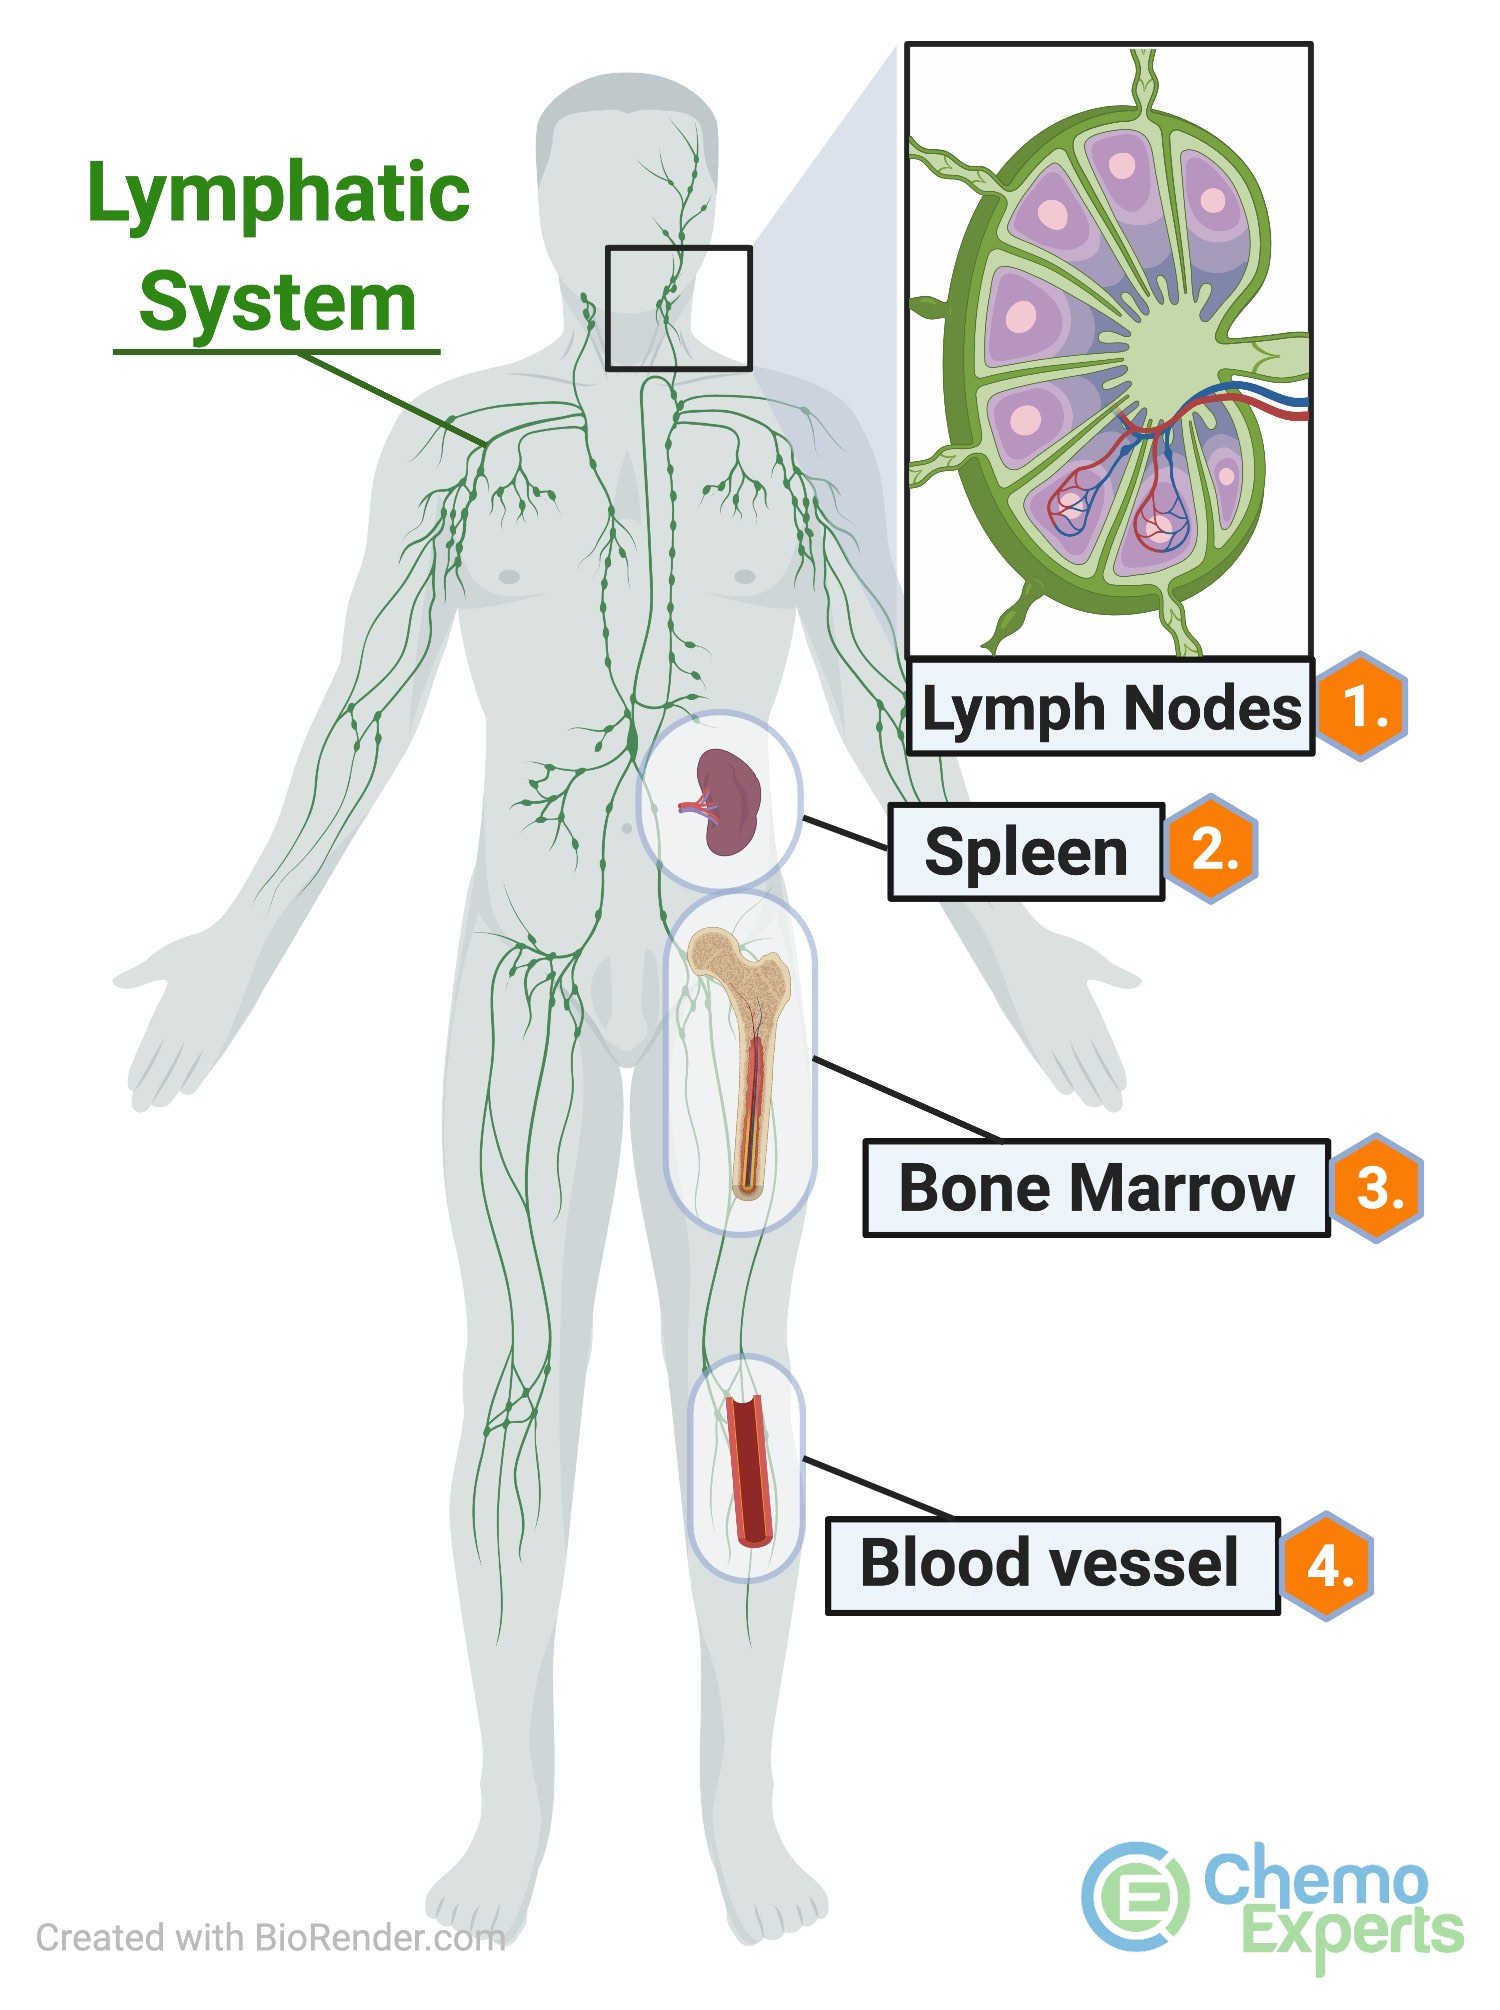 CLL may affect lymph nodes, the spleen, bone marrow, and the blood